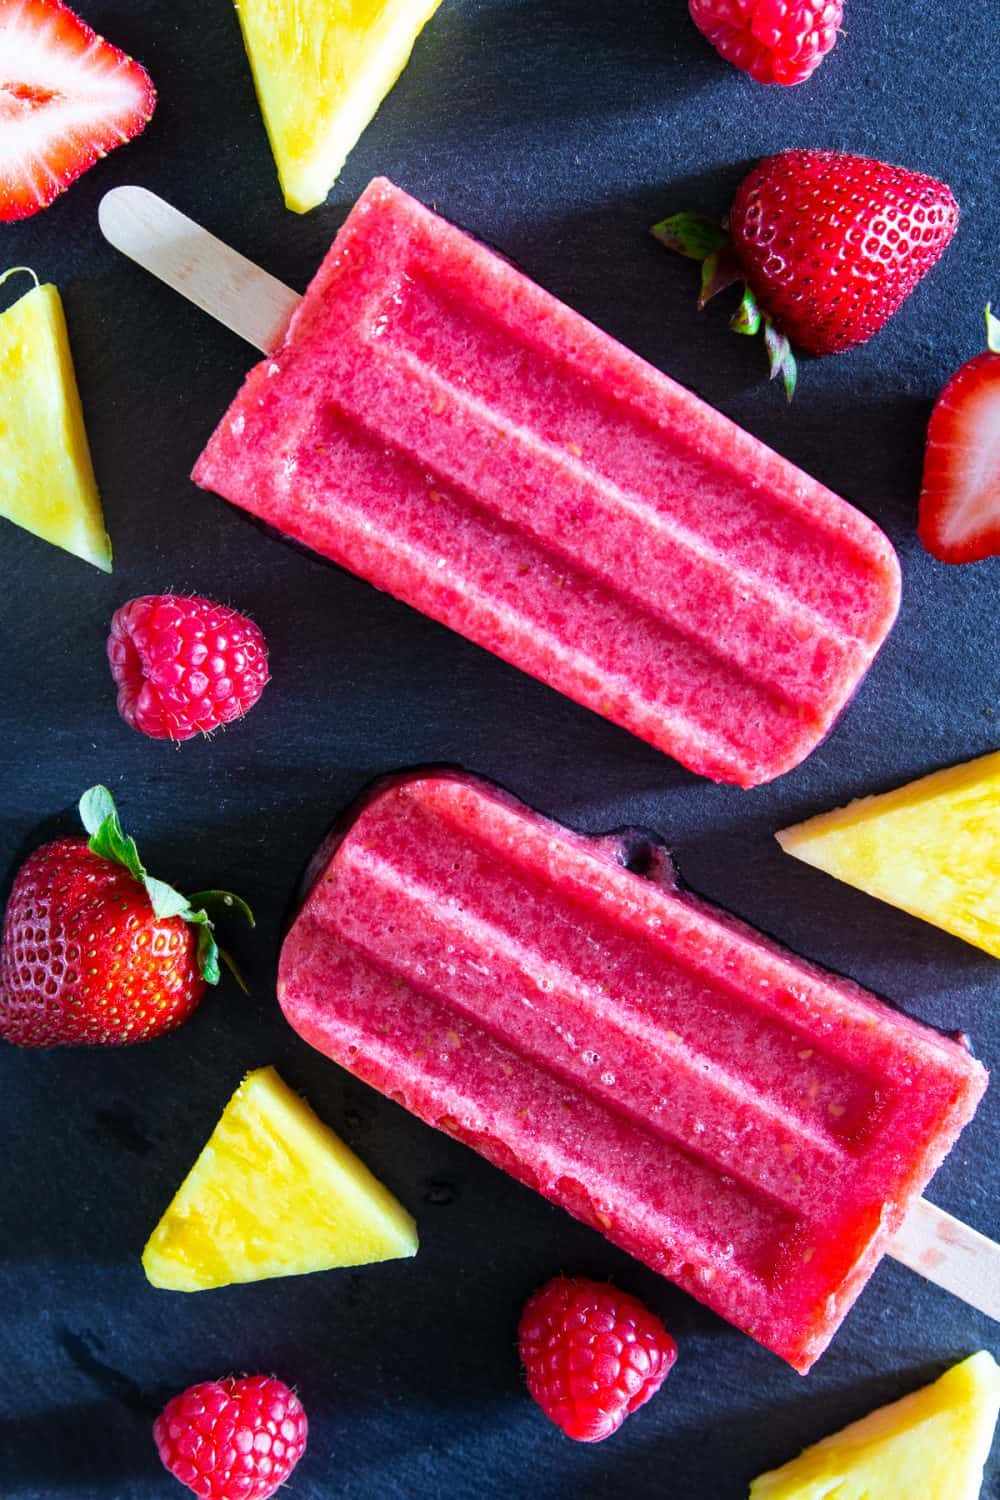 Strawberry pineapple fruit popsicles laying on a black surface with chunks of pineapple and fresh berries laying around them.